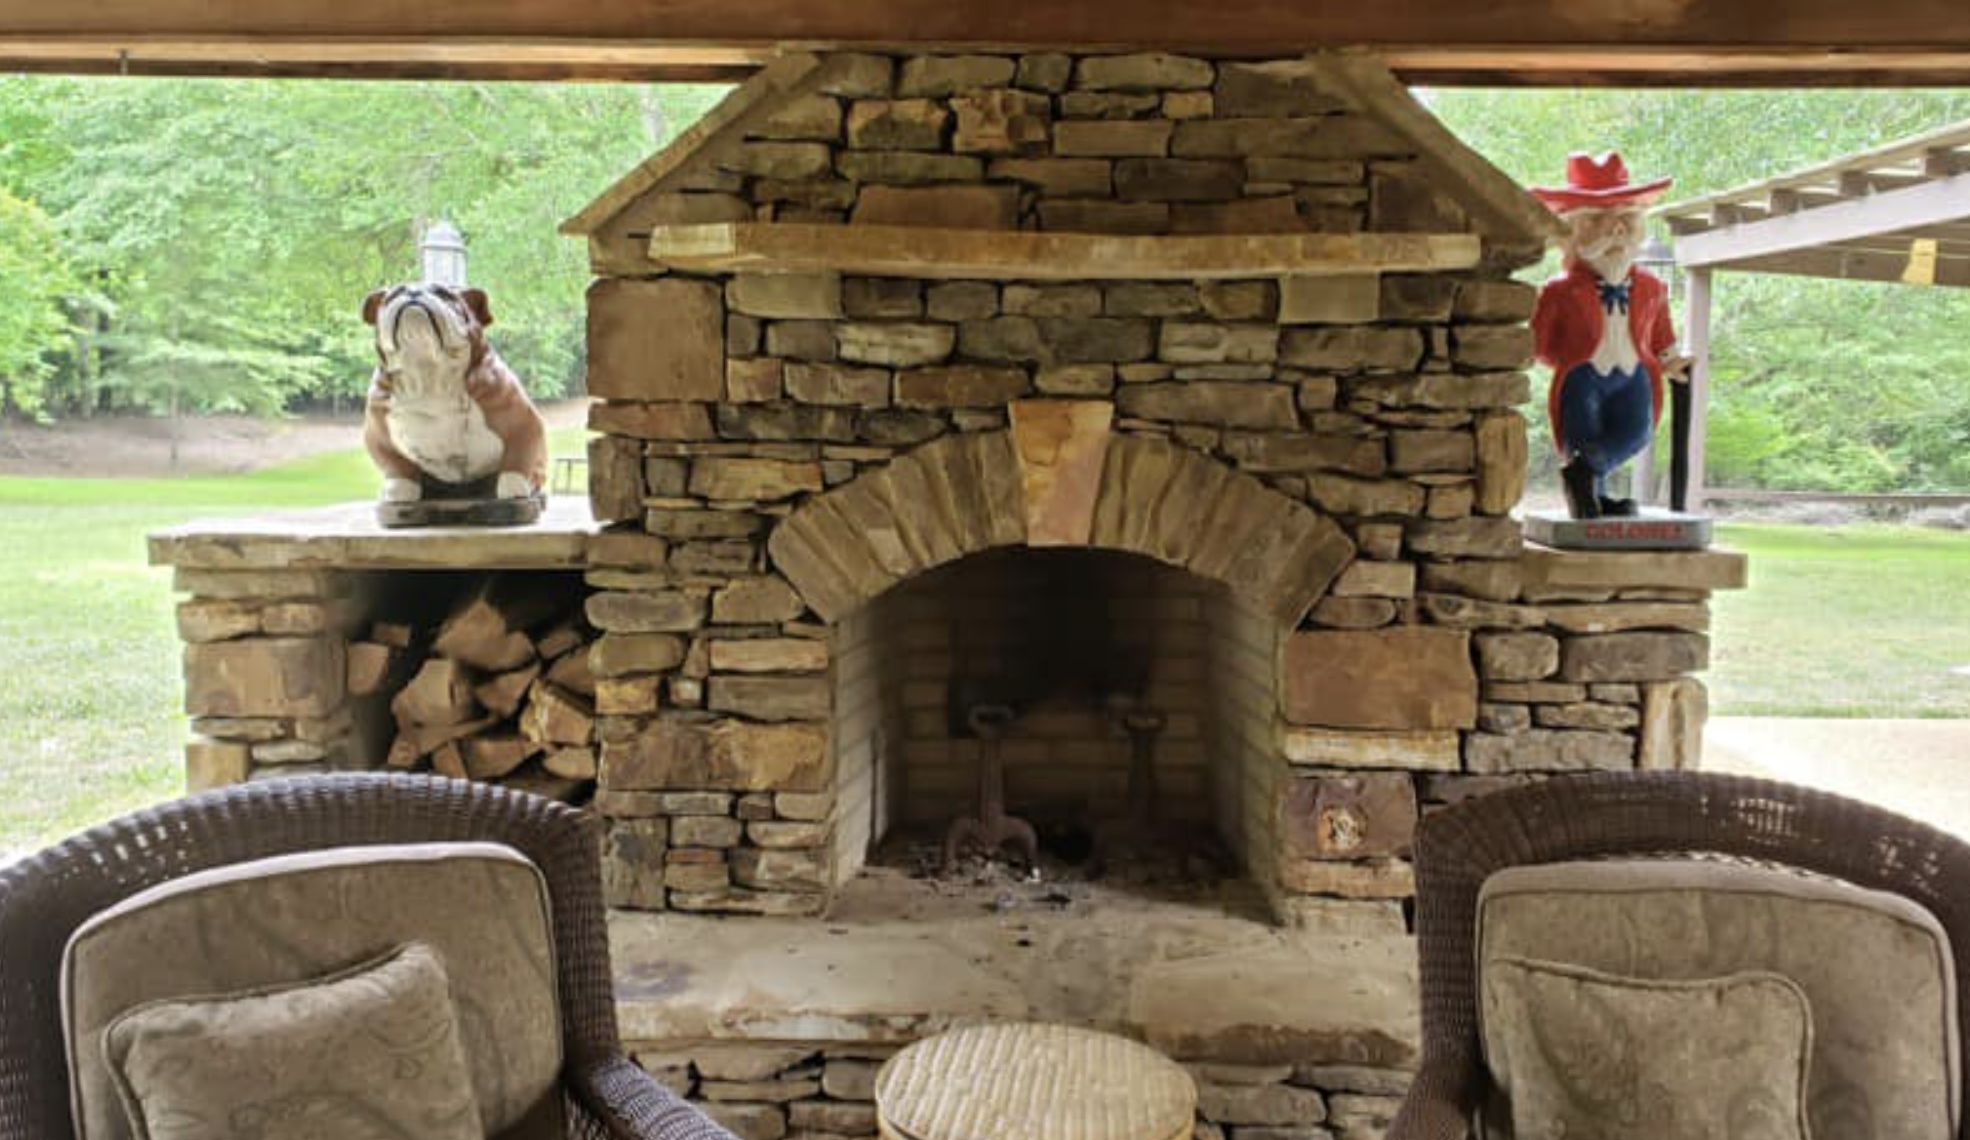 this image shows fireplace in Pleasanton, California